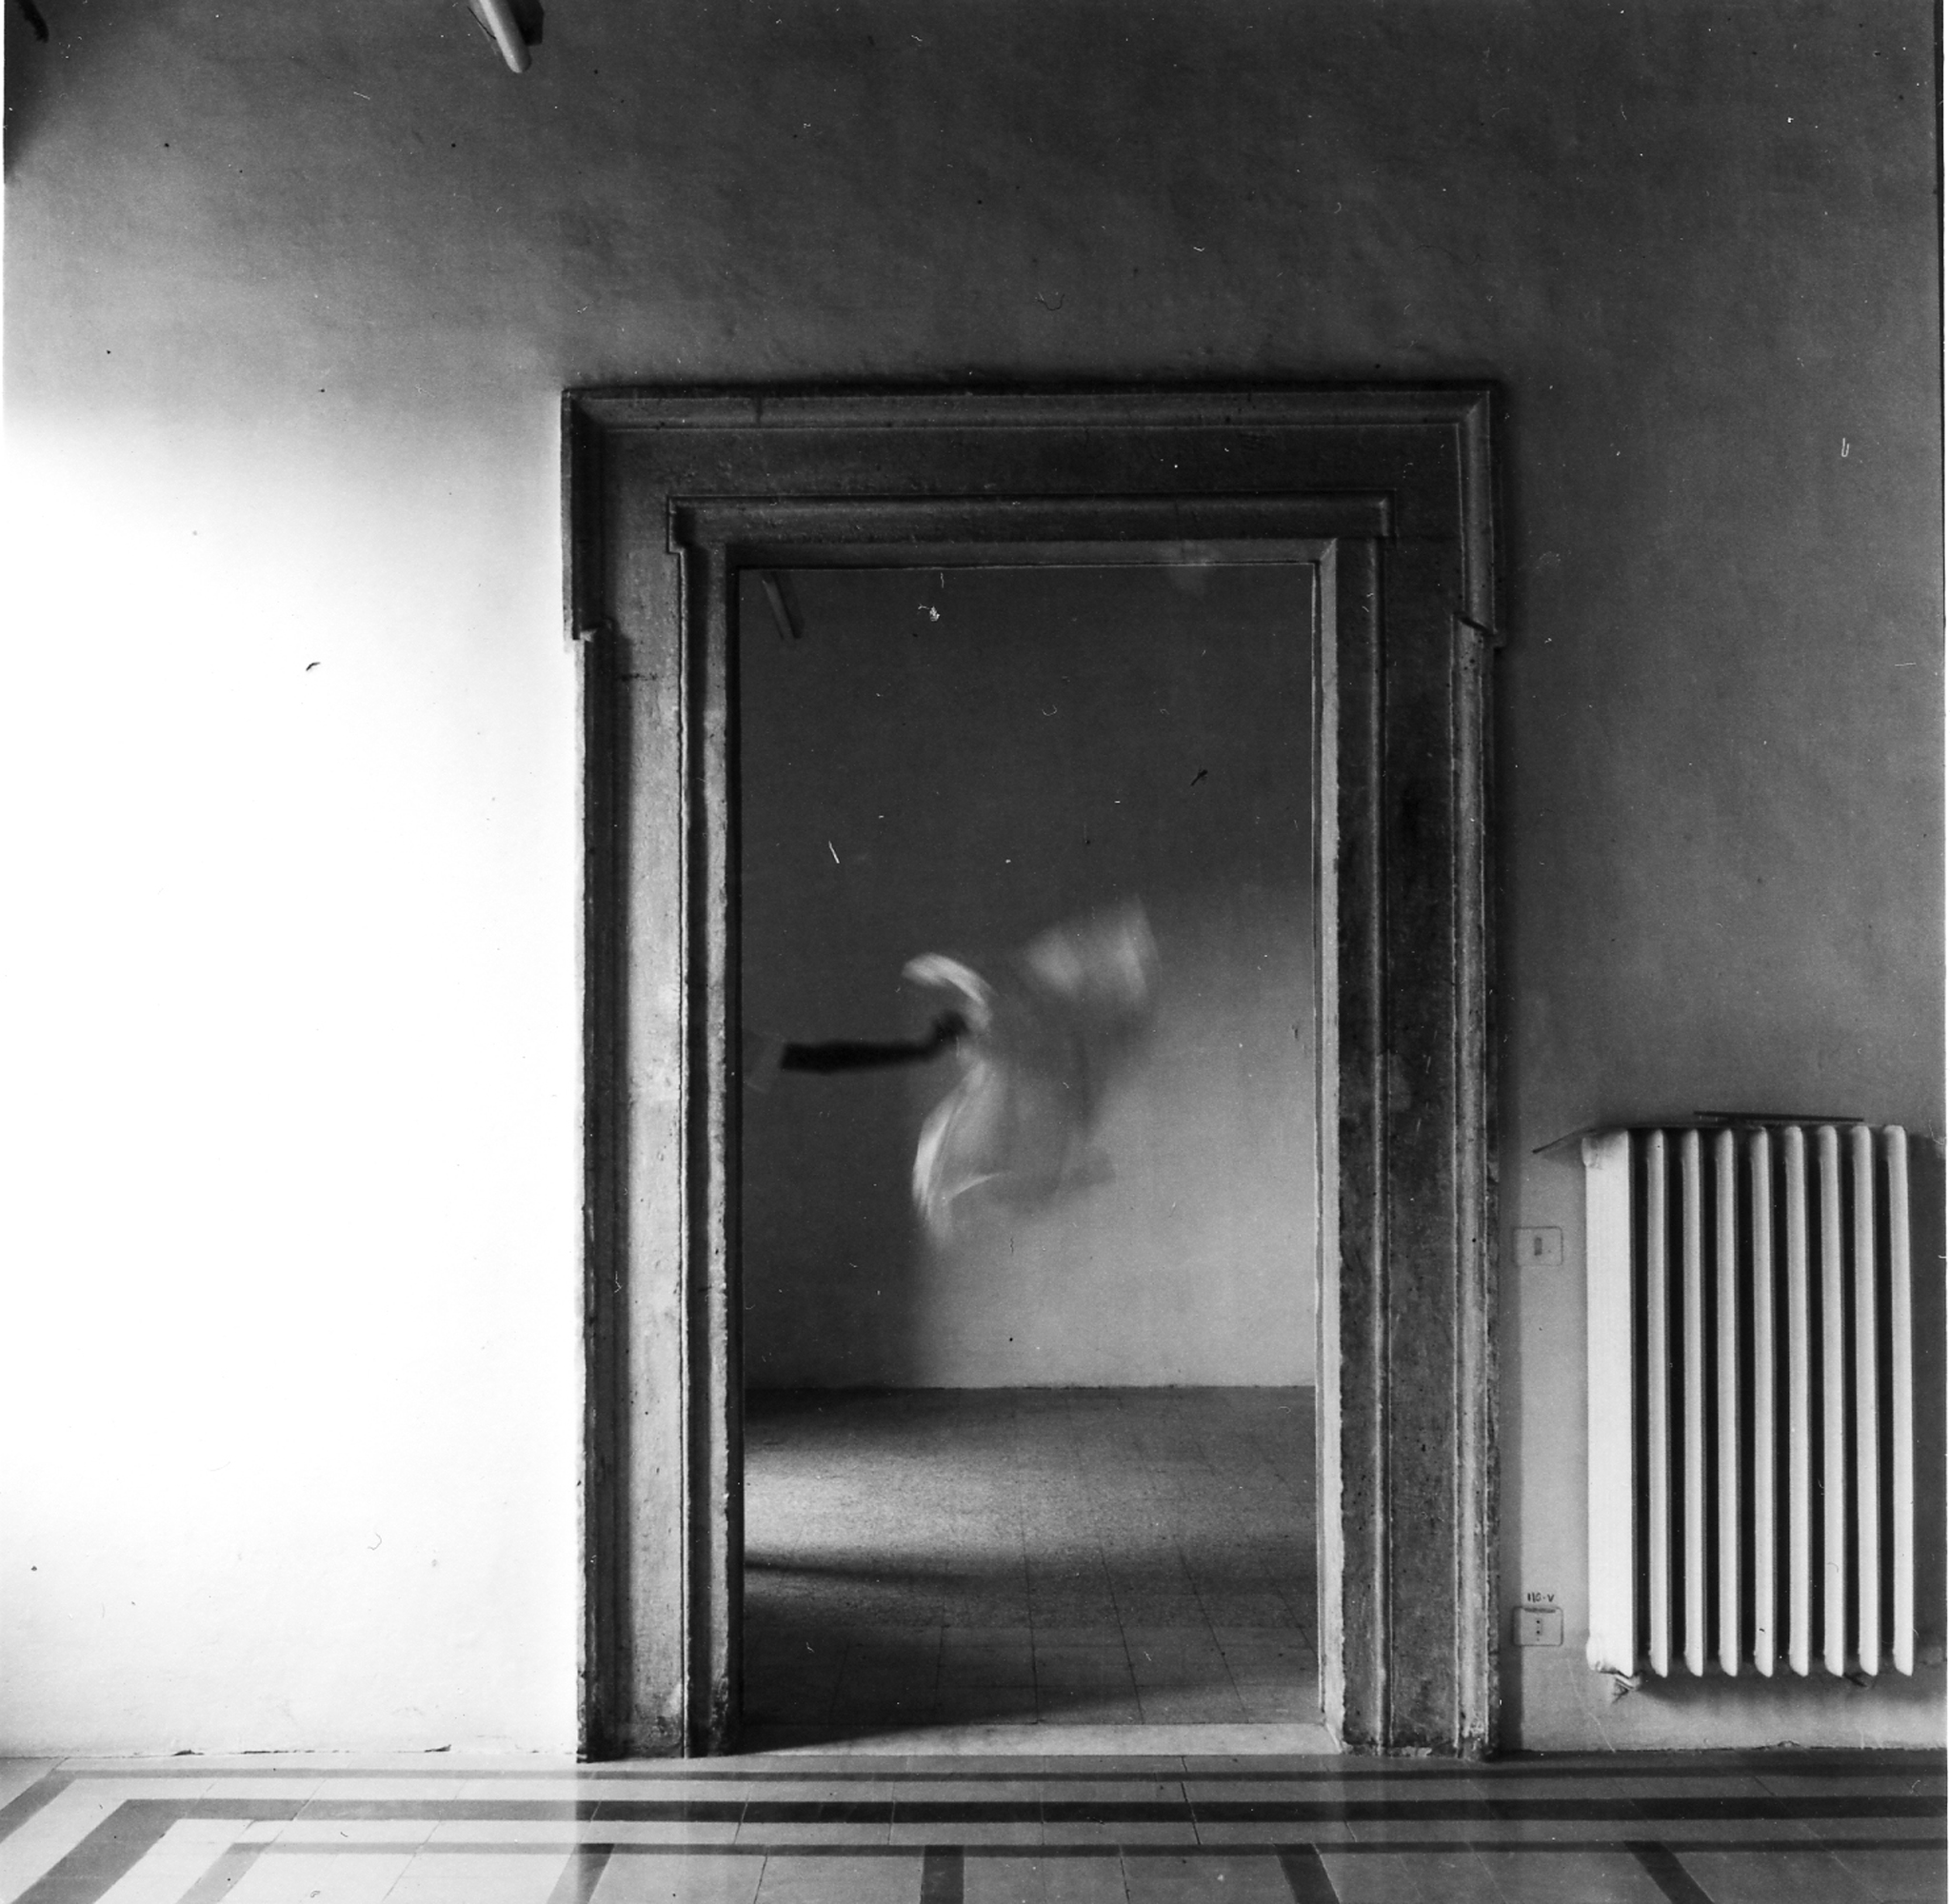 Francesca Woodman,  From Angel Series, Rome Italy, 1977, Louisiana Museum of Modern Art.